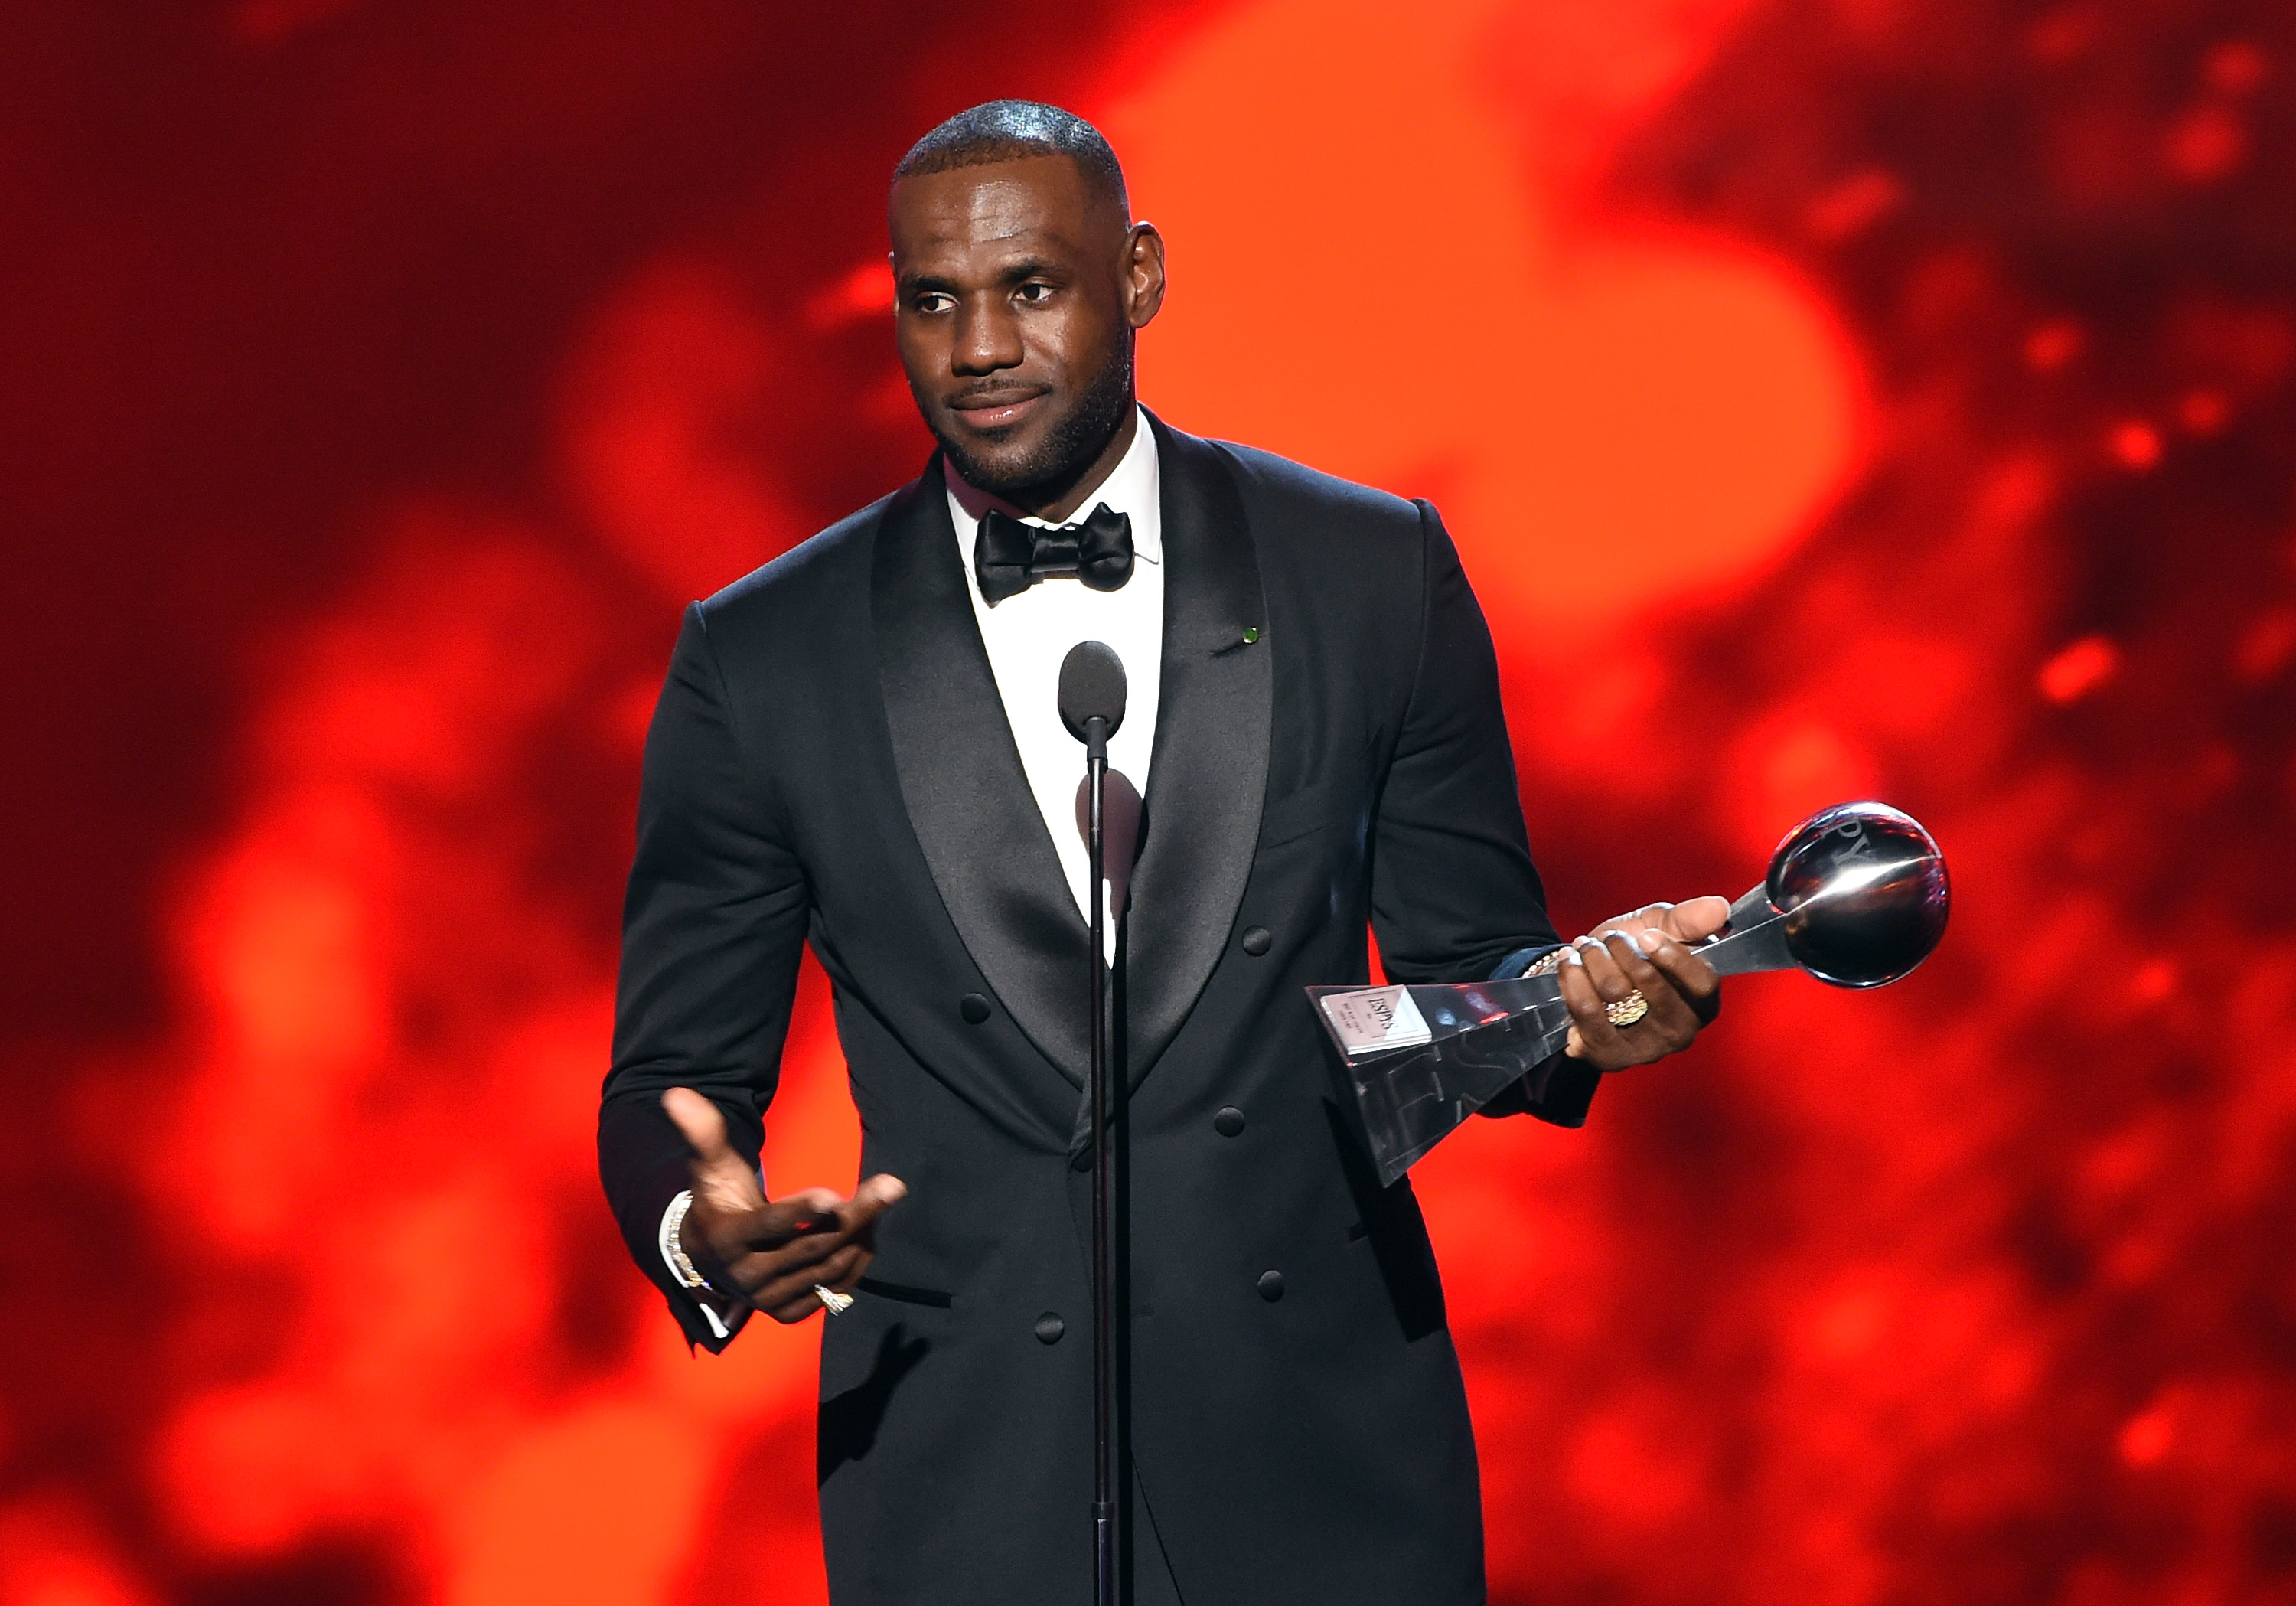 LeBron James accepts the 2016 Best Male Athlete award onstage at the ESPYS